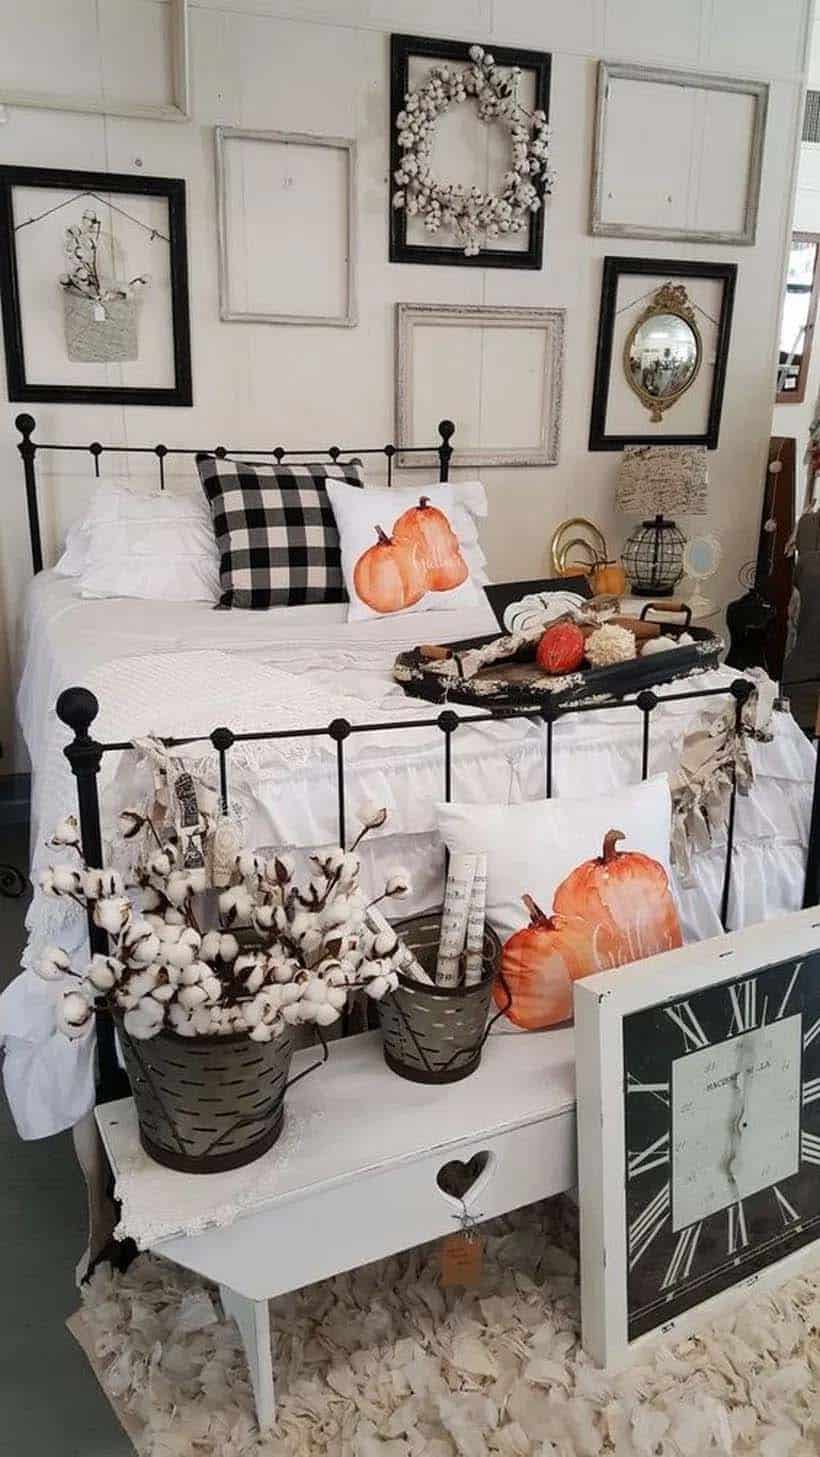 Fall bedroom decor white bedroom with black accents and orange pumpkin throw pillows and orange and white gordes.